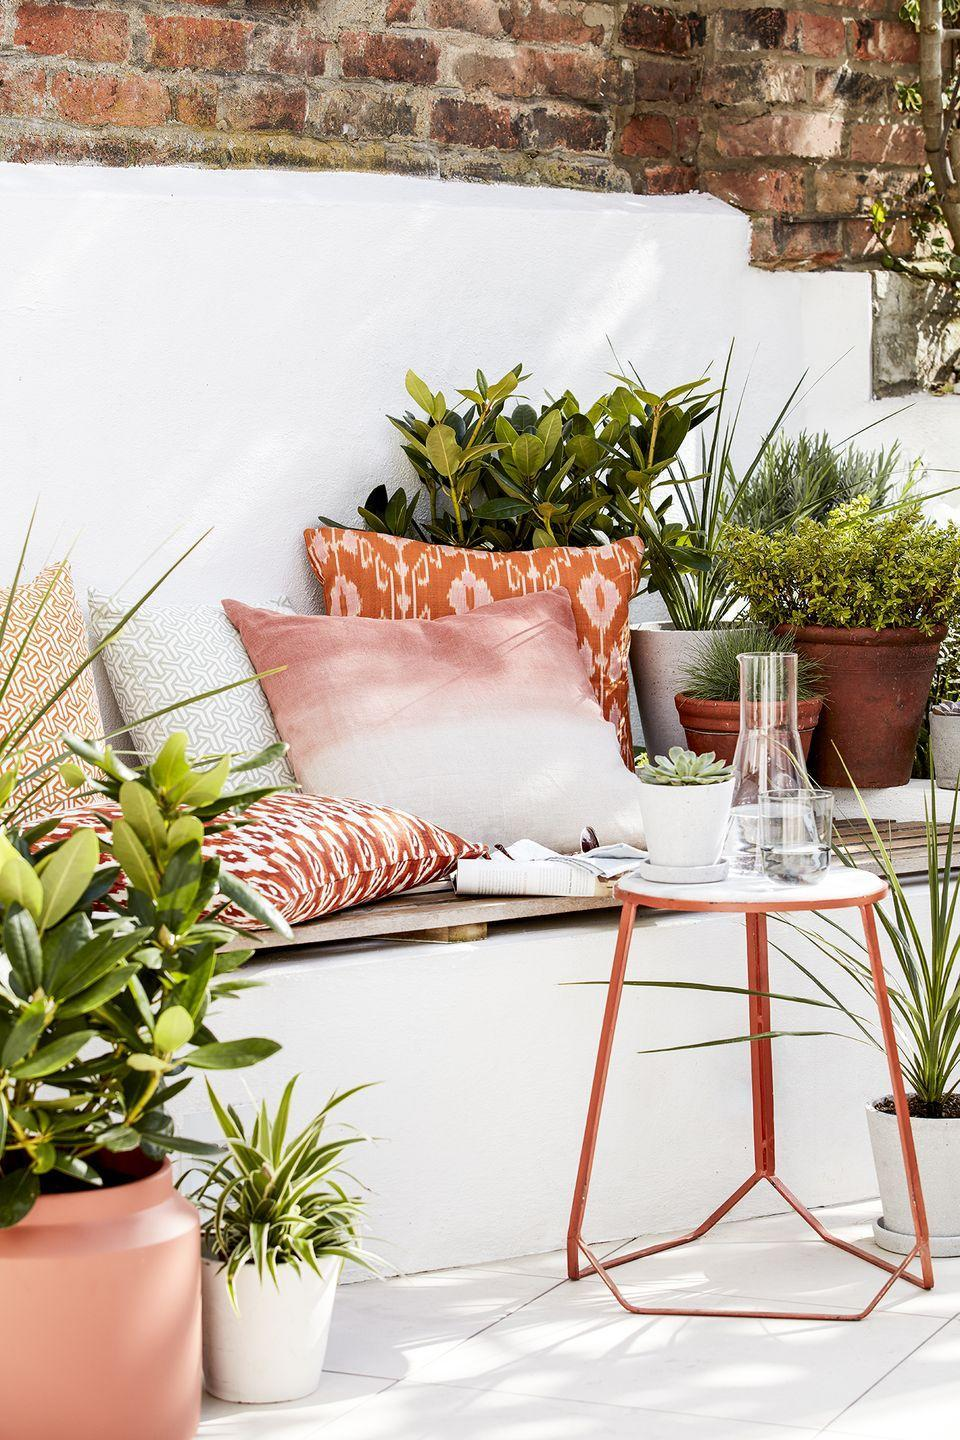 <p>Turn any ol' ledge into an ultra-cozy seating nook. Outfit the wide railing or garden wall with colorful pillows and potted plants, and then pull up a small side table. </p>